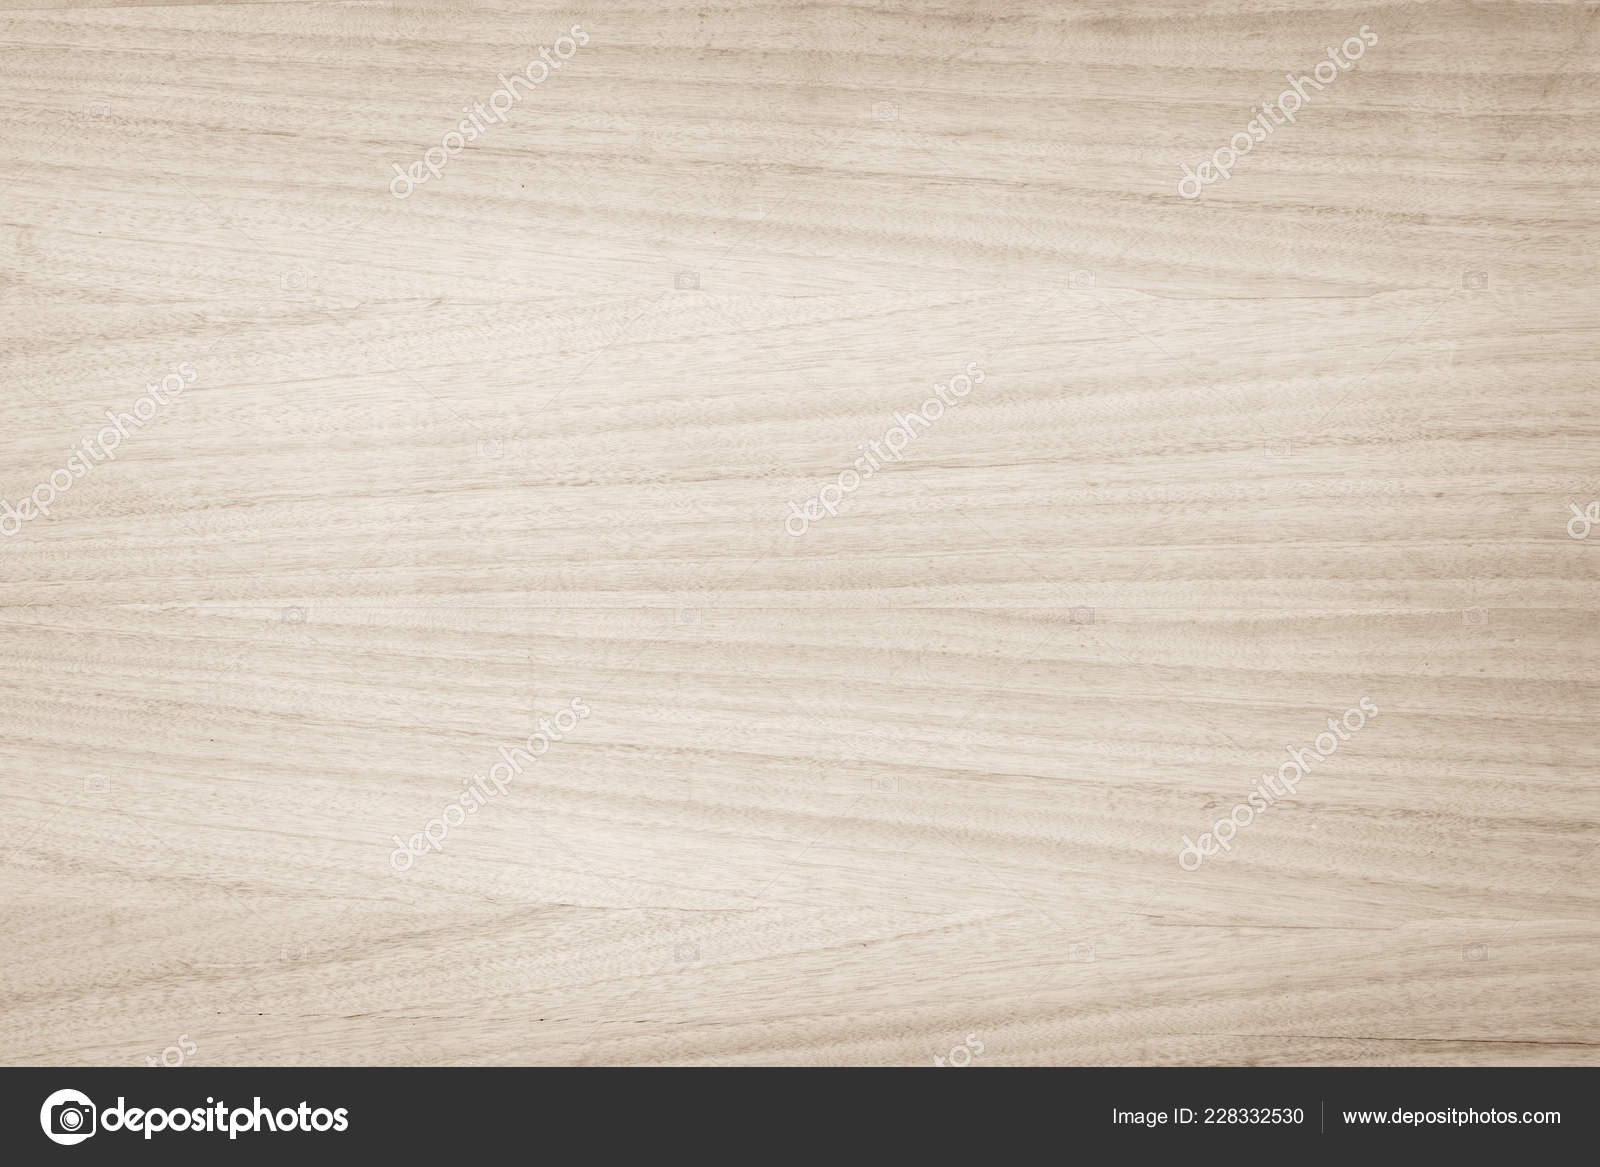 Old Plywood Textured Wooden Background Wood Surface Bright Brown Grunge Stock Photo C Phokin2516 Gmail Com 228332530